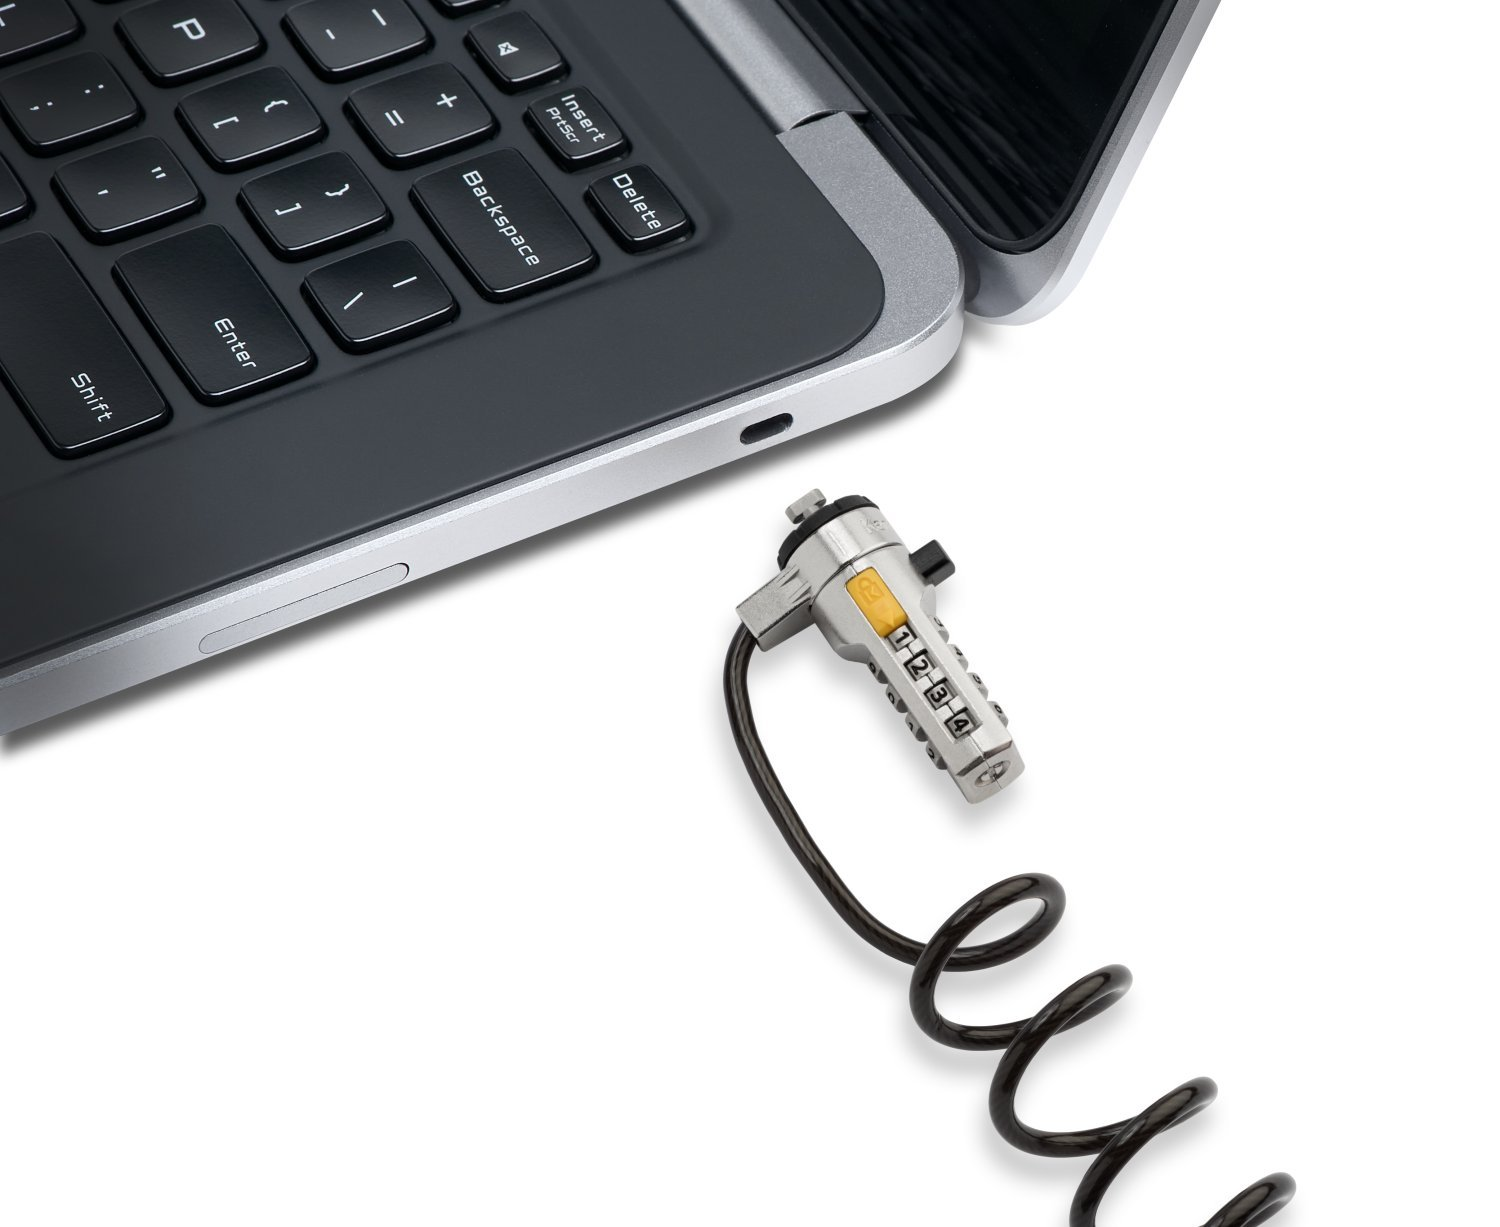 Kensington Portable Combination Cable Lock for Laptops and Other Devices - Black (K64670AM) by Kensington (Image #6)